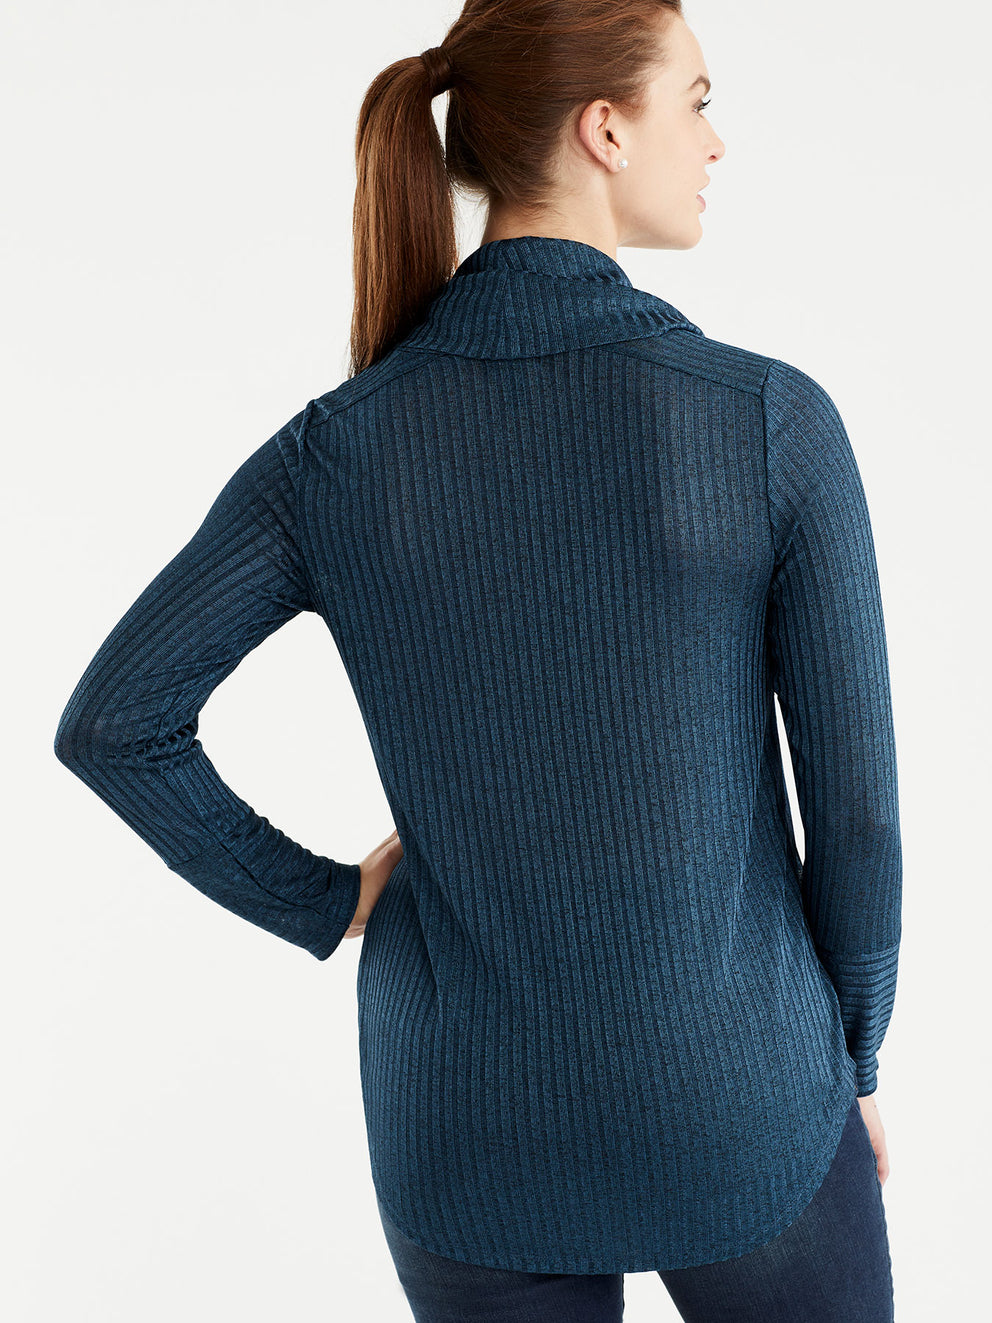 The Jones New York Marled Rib Cowl Neck Top, Plus Size in color Deep Sky - Image Position 3